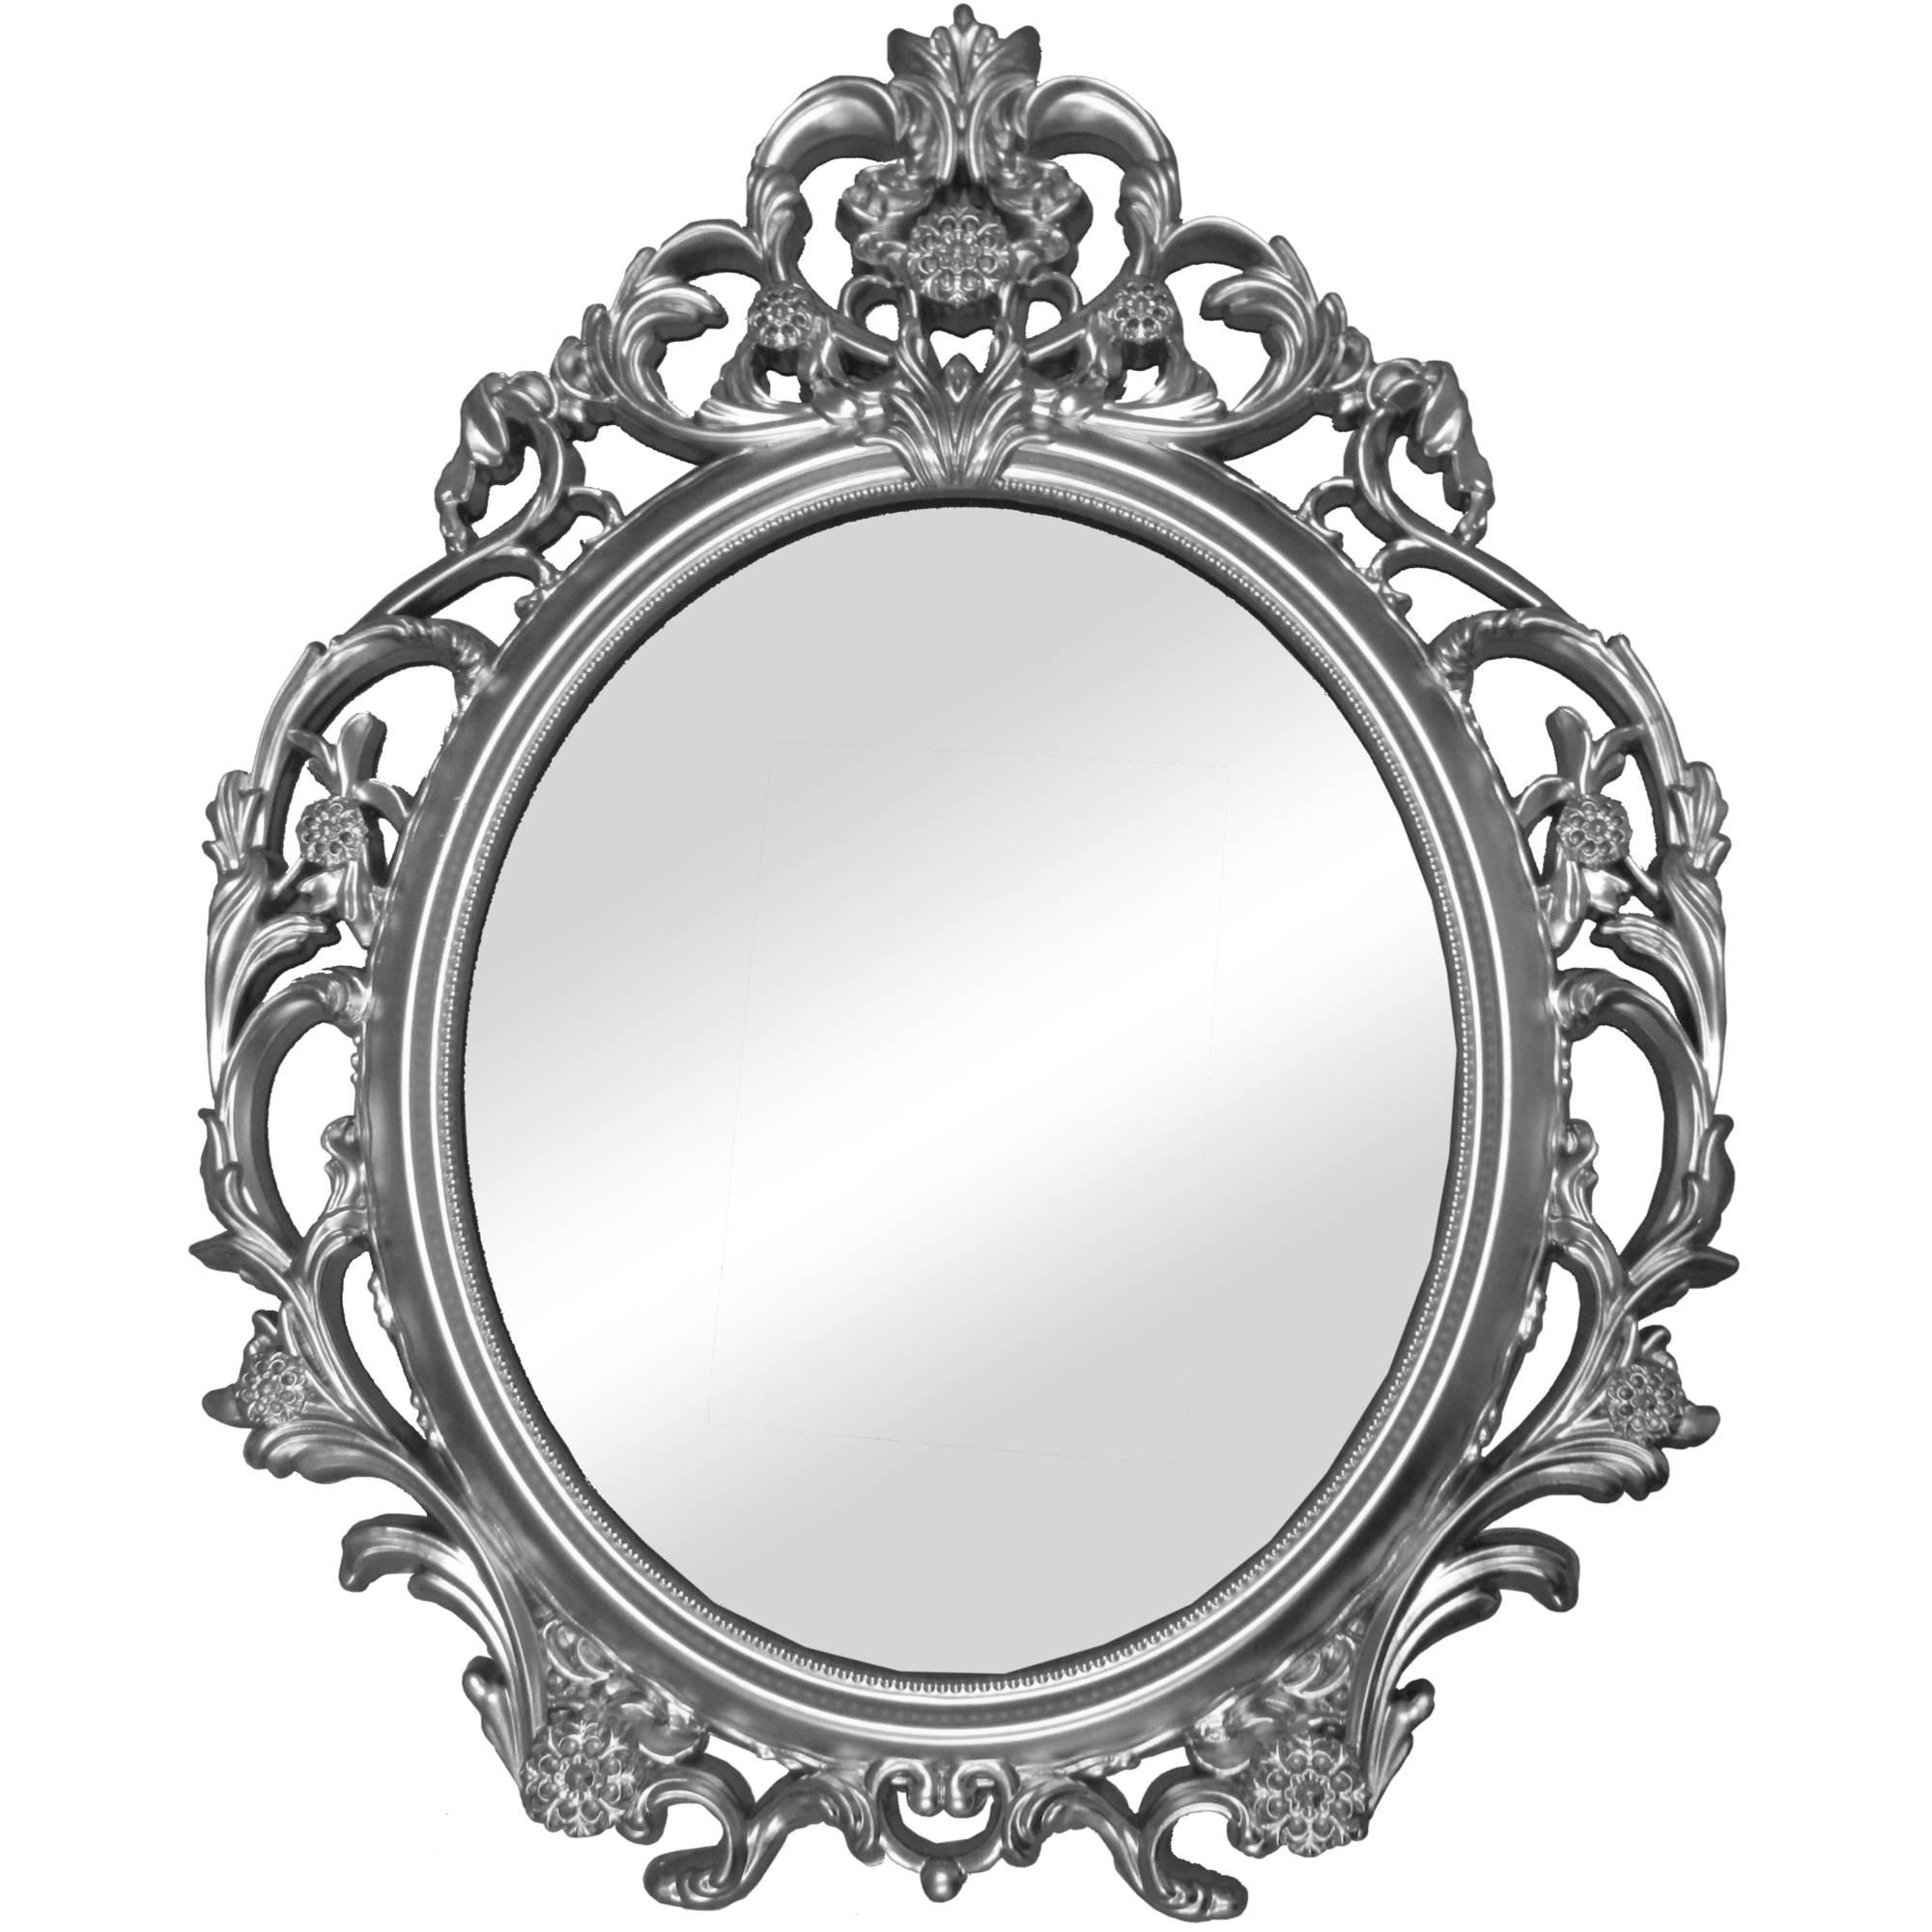 Better Homes And Gardens Baroque Wall Mirror – Walmart For Baroque Black Mirror (Image 7 of 20)